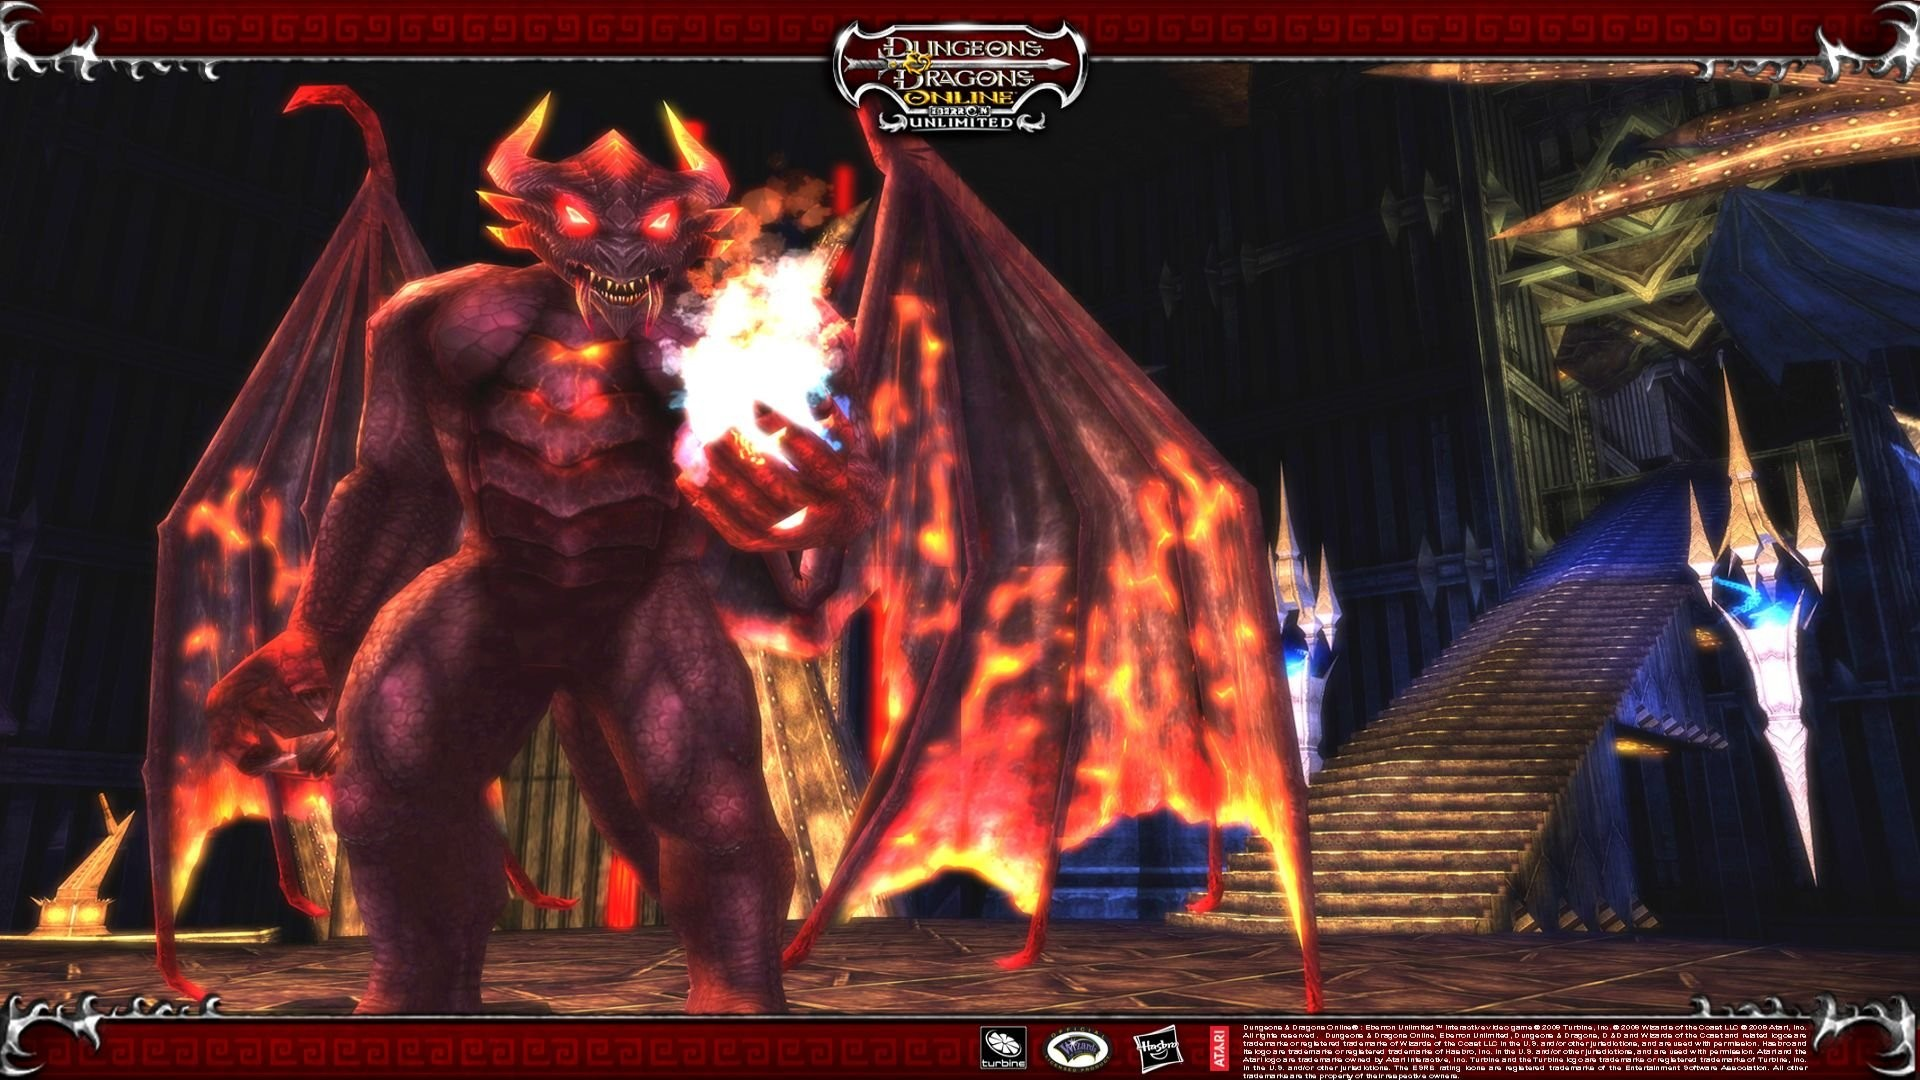 Dungeons And Dragons Online 460251